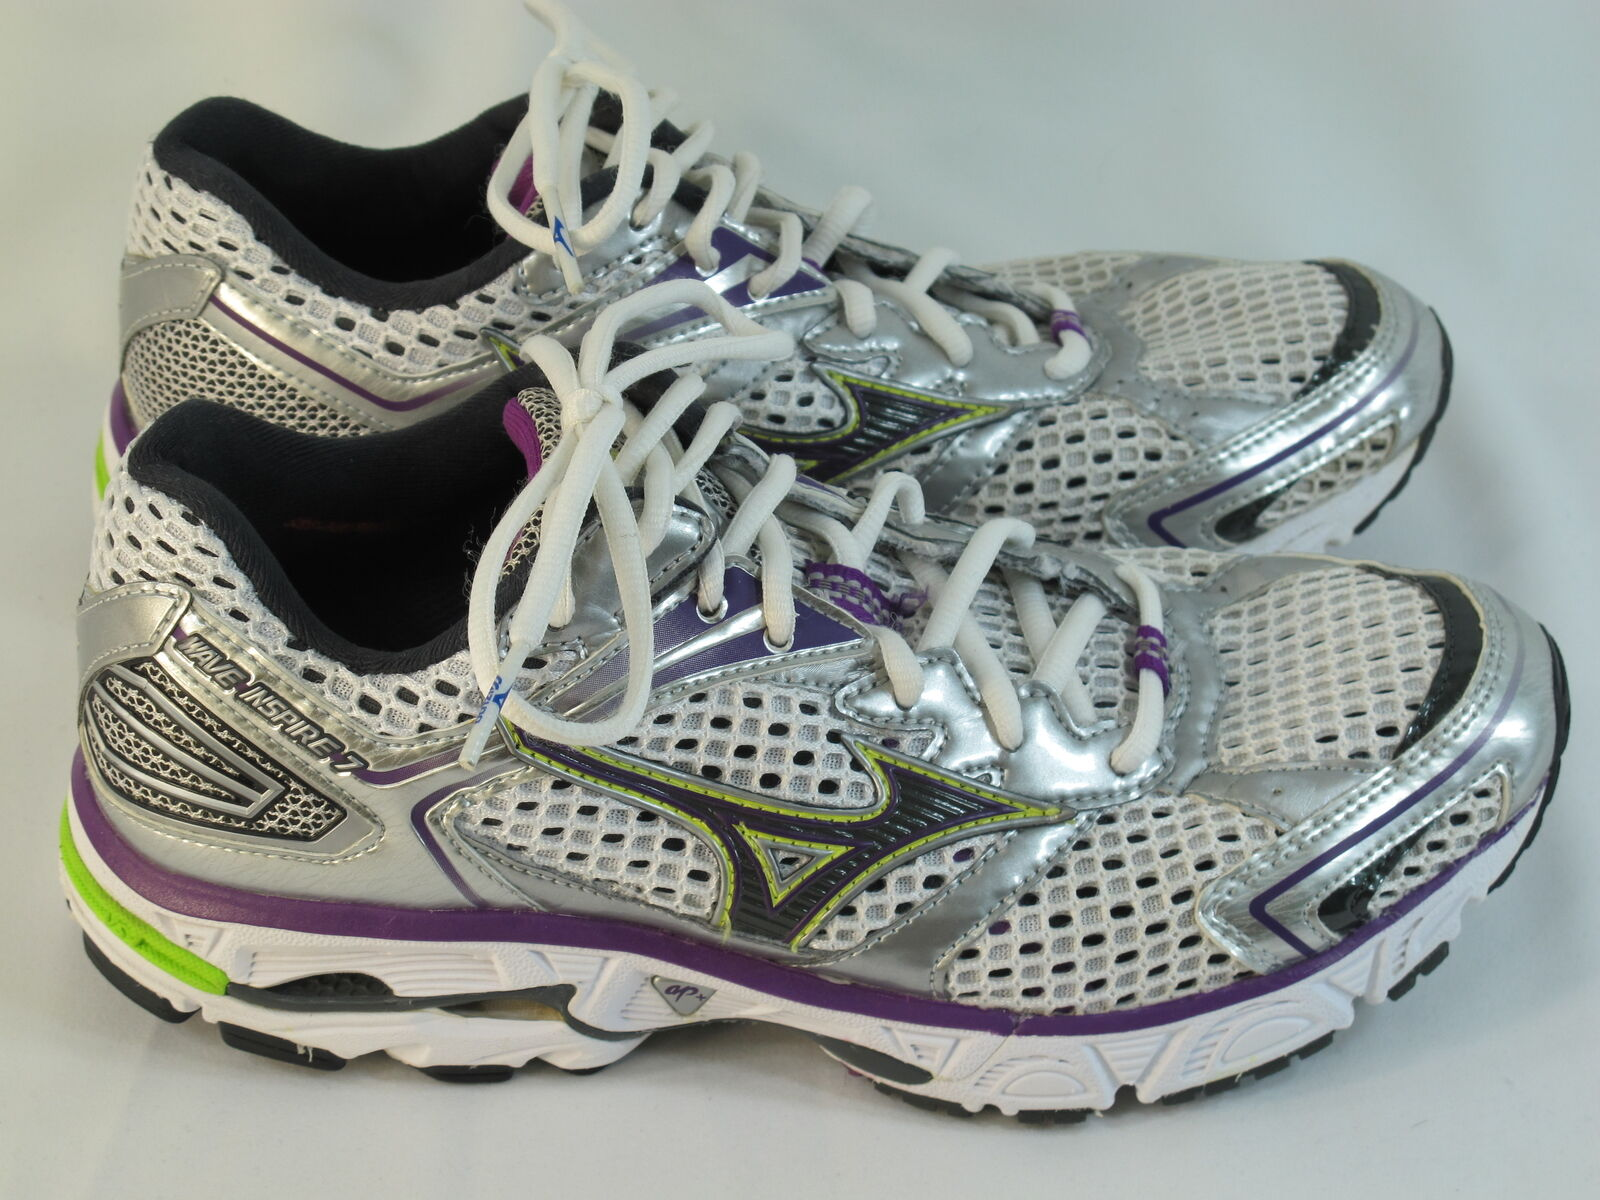 Mizuno Wave Inspire 7 Running shoes Women's Size 9 US Near Mint Condition